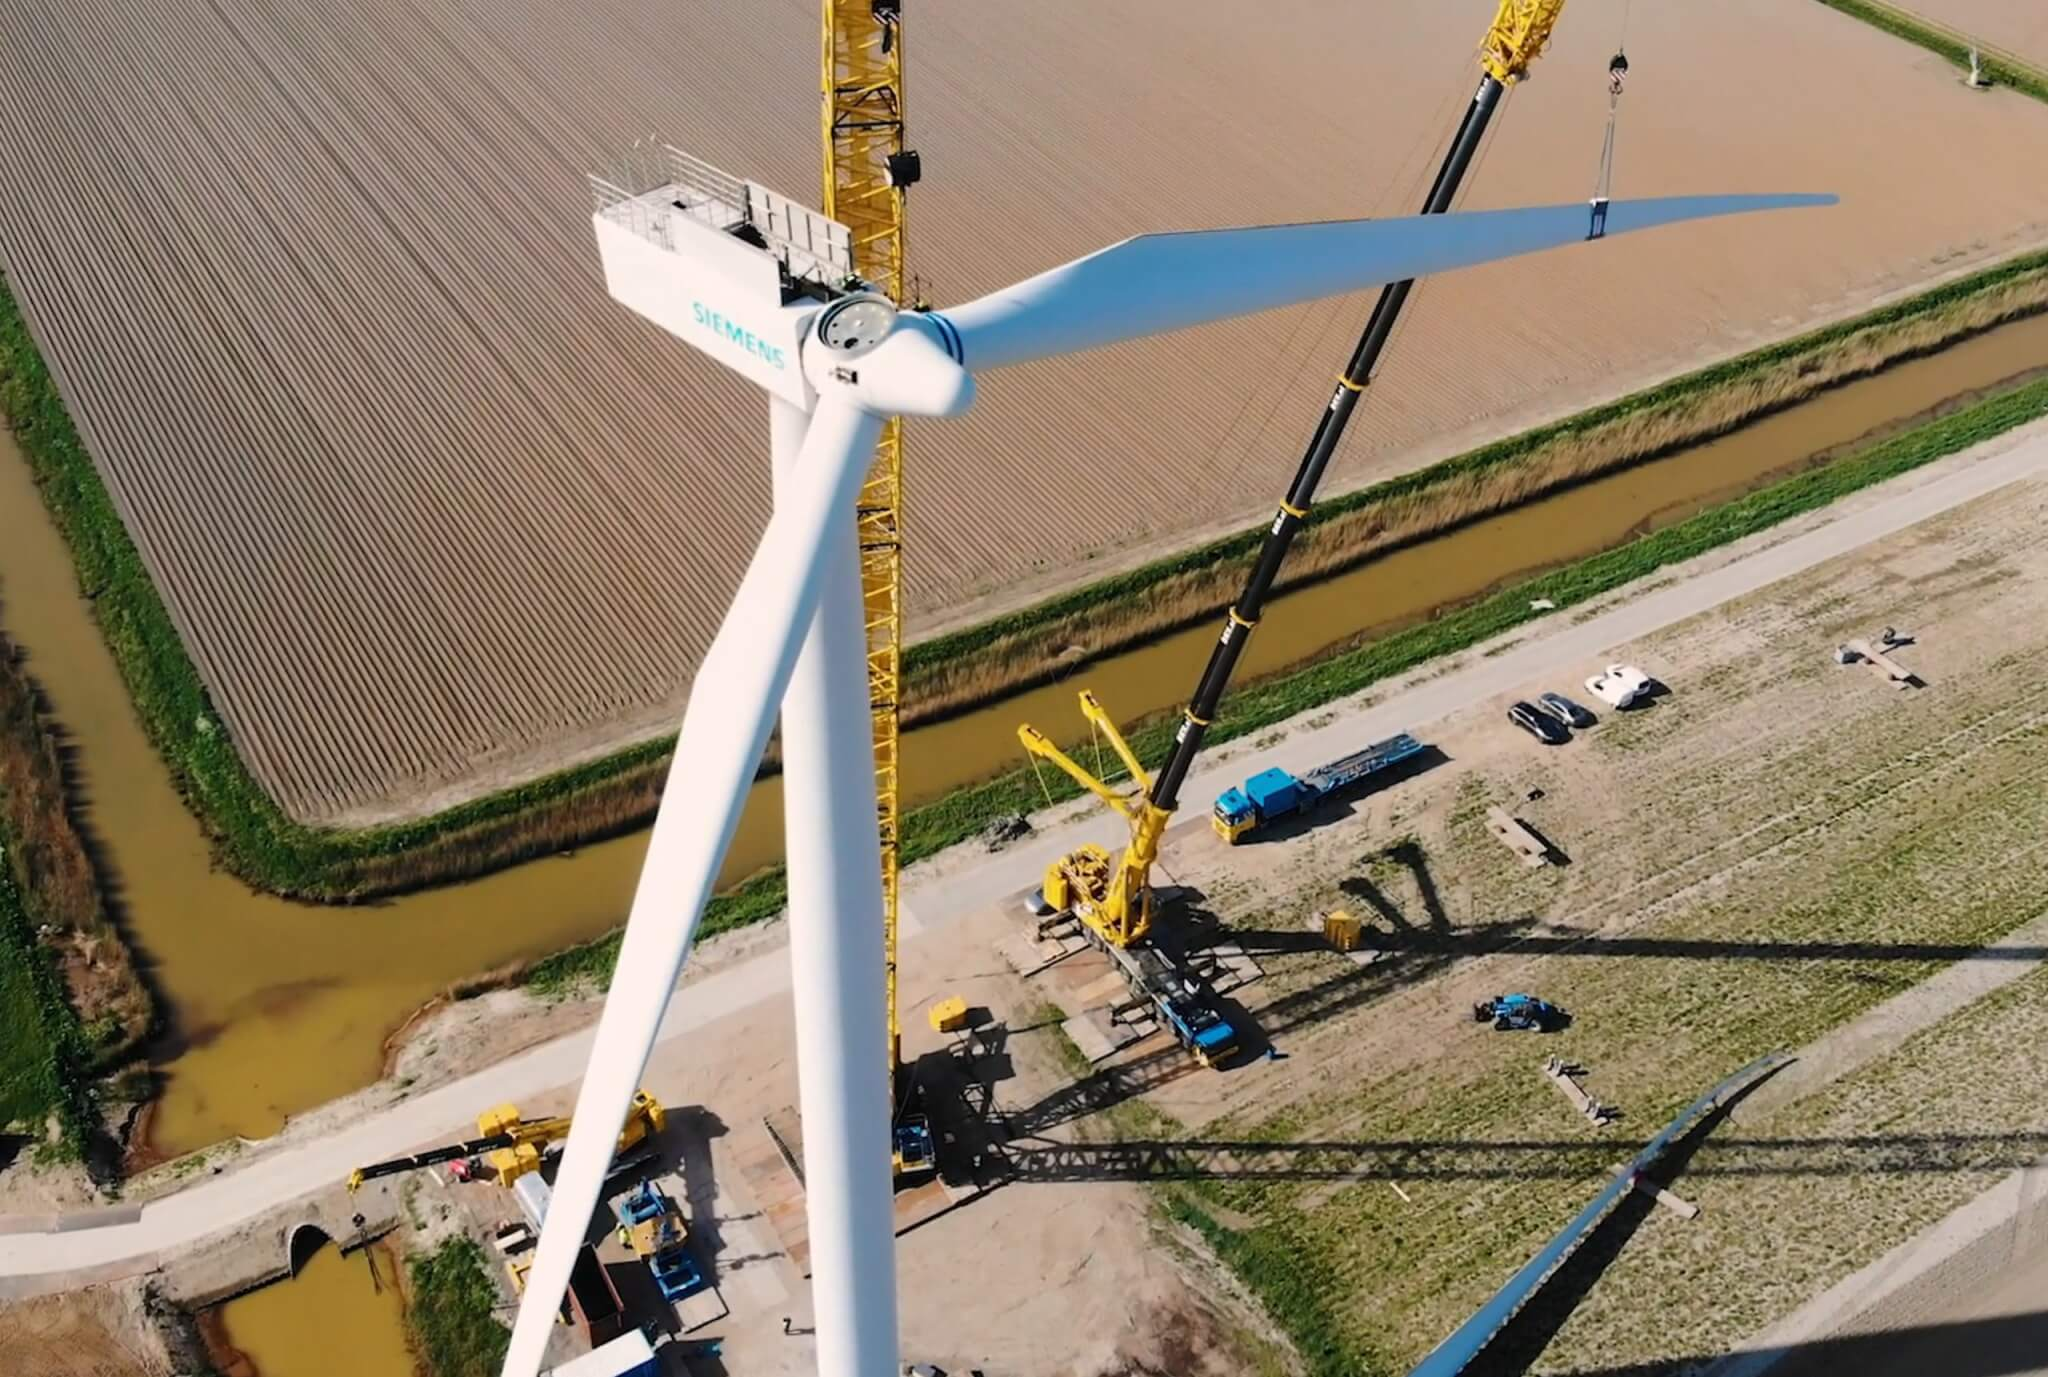 Rengineers has the in-house knowledge needed for full project realisation. From purchasing and disassembling existing wind turbines to giving used turbines a new lease of life. A prime example of sustainability and doughnut economy.